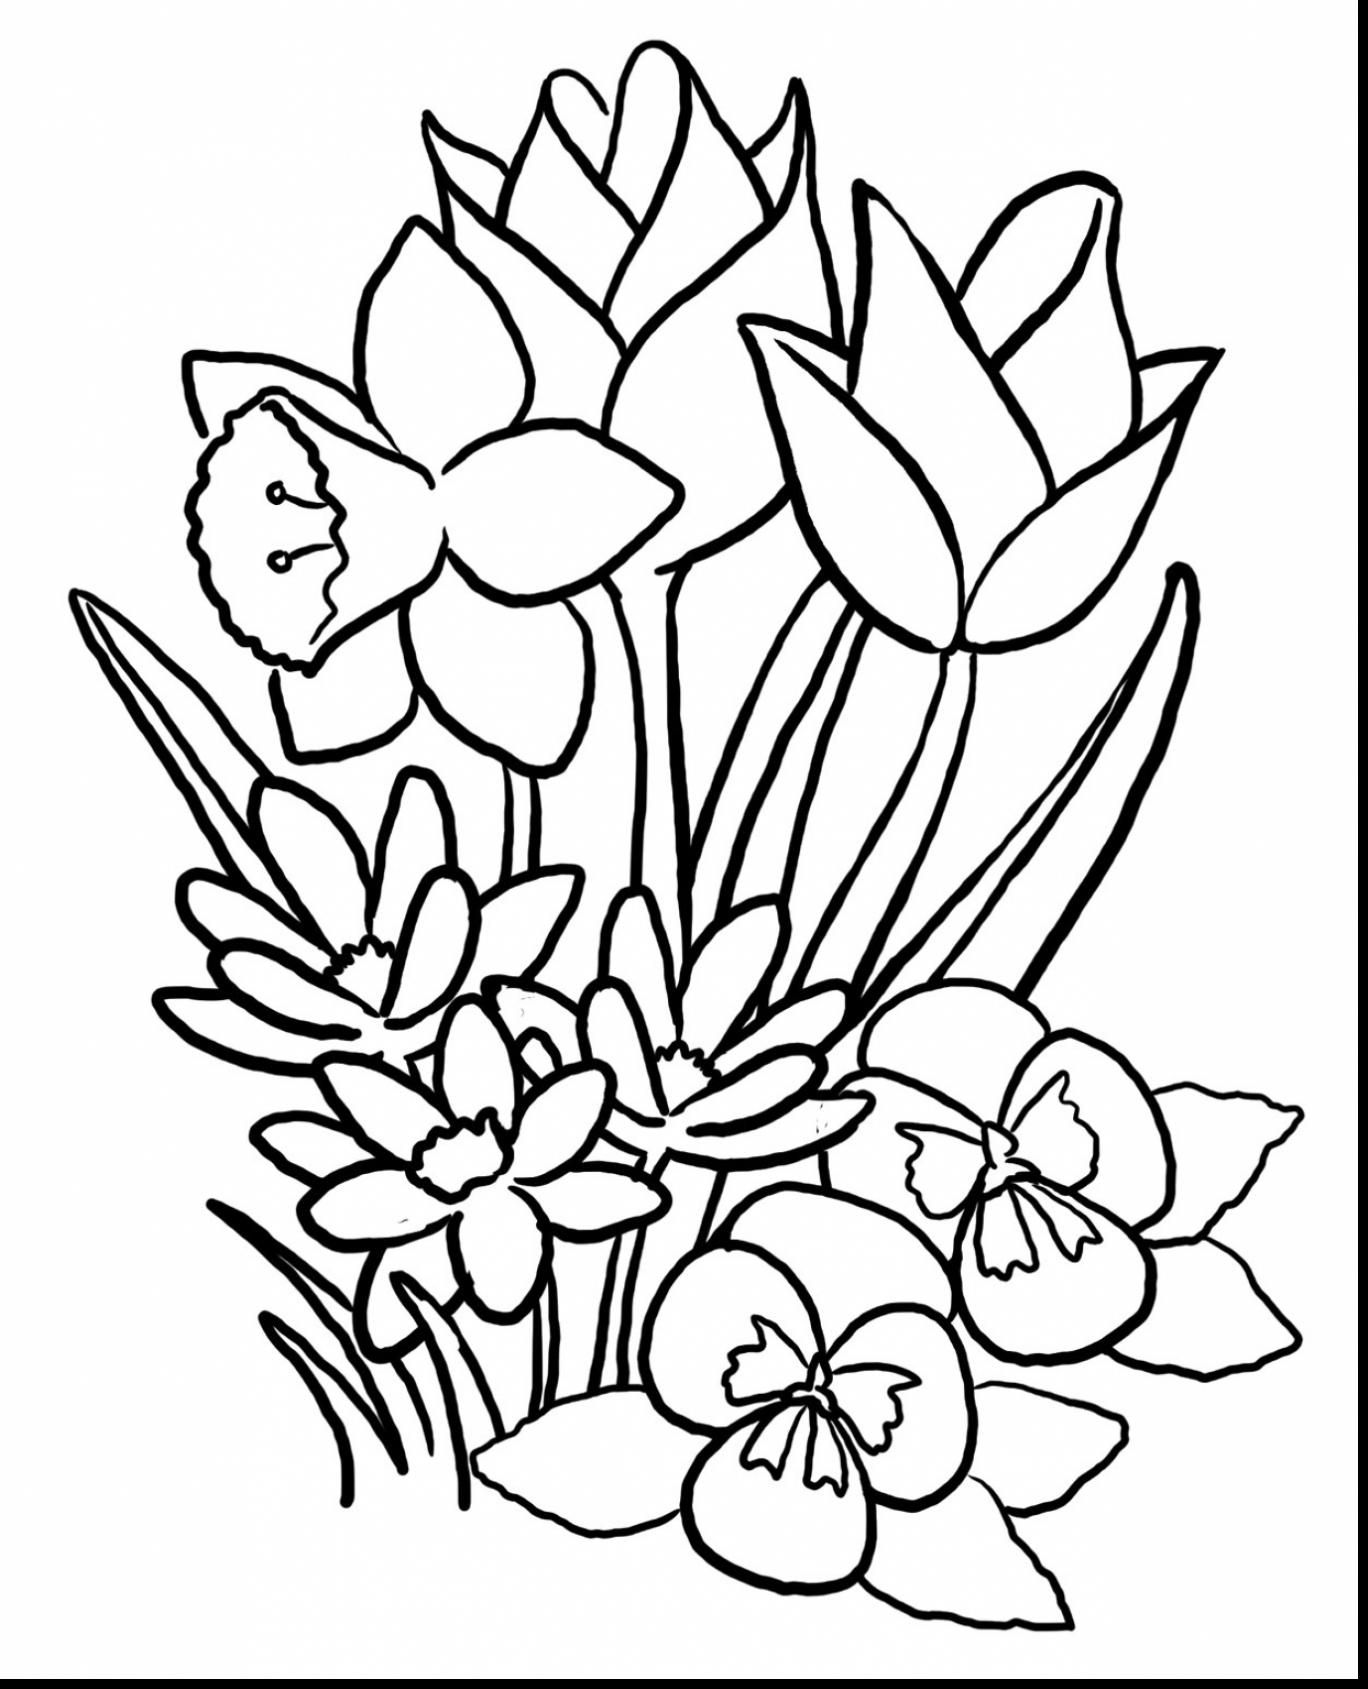 great spring flower coloring pages with spring coloring pages - Springtime Coloring Pages 2